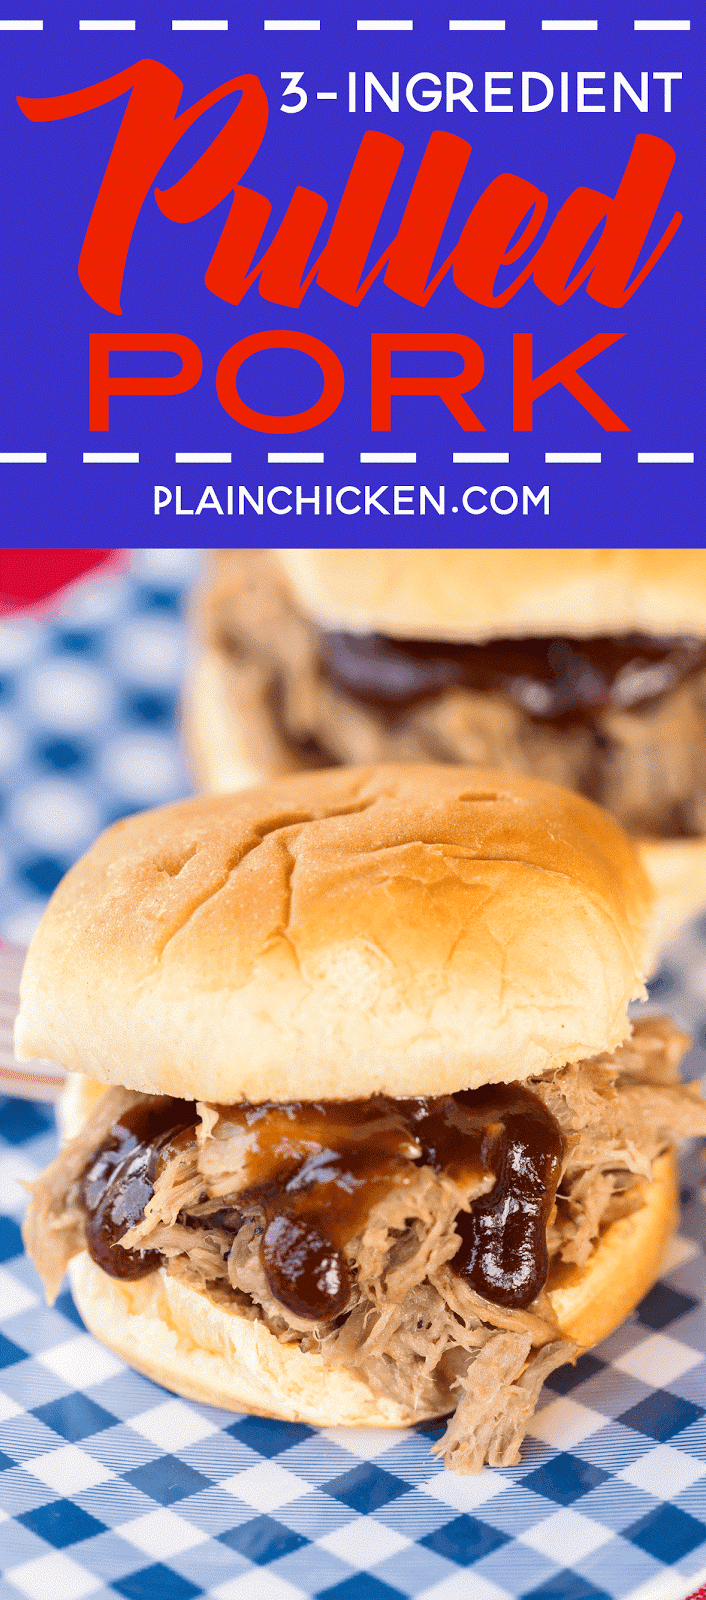 3-Ingredient Pulled Pork - slow cooked pork shoulder that is better than any restaurant! Great on hamburger buns, on top of a baked potato, nachos or a salad. All you need is some slaw and baked beans and you are all set. Easy peasy party! You can also freeze the leftovers for later.